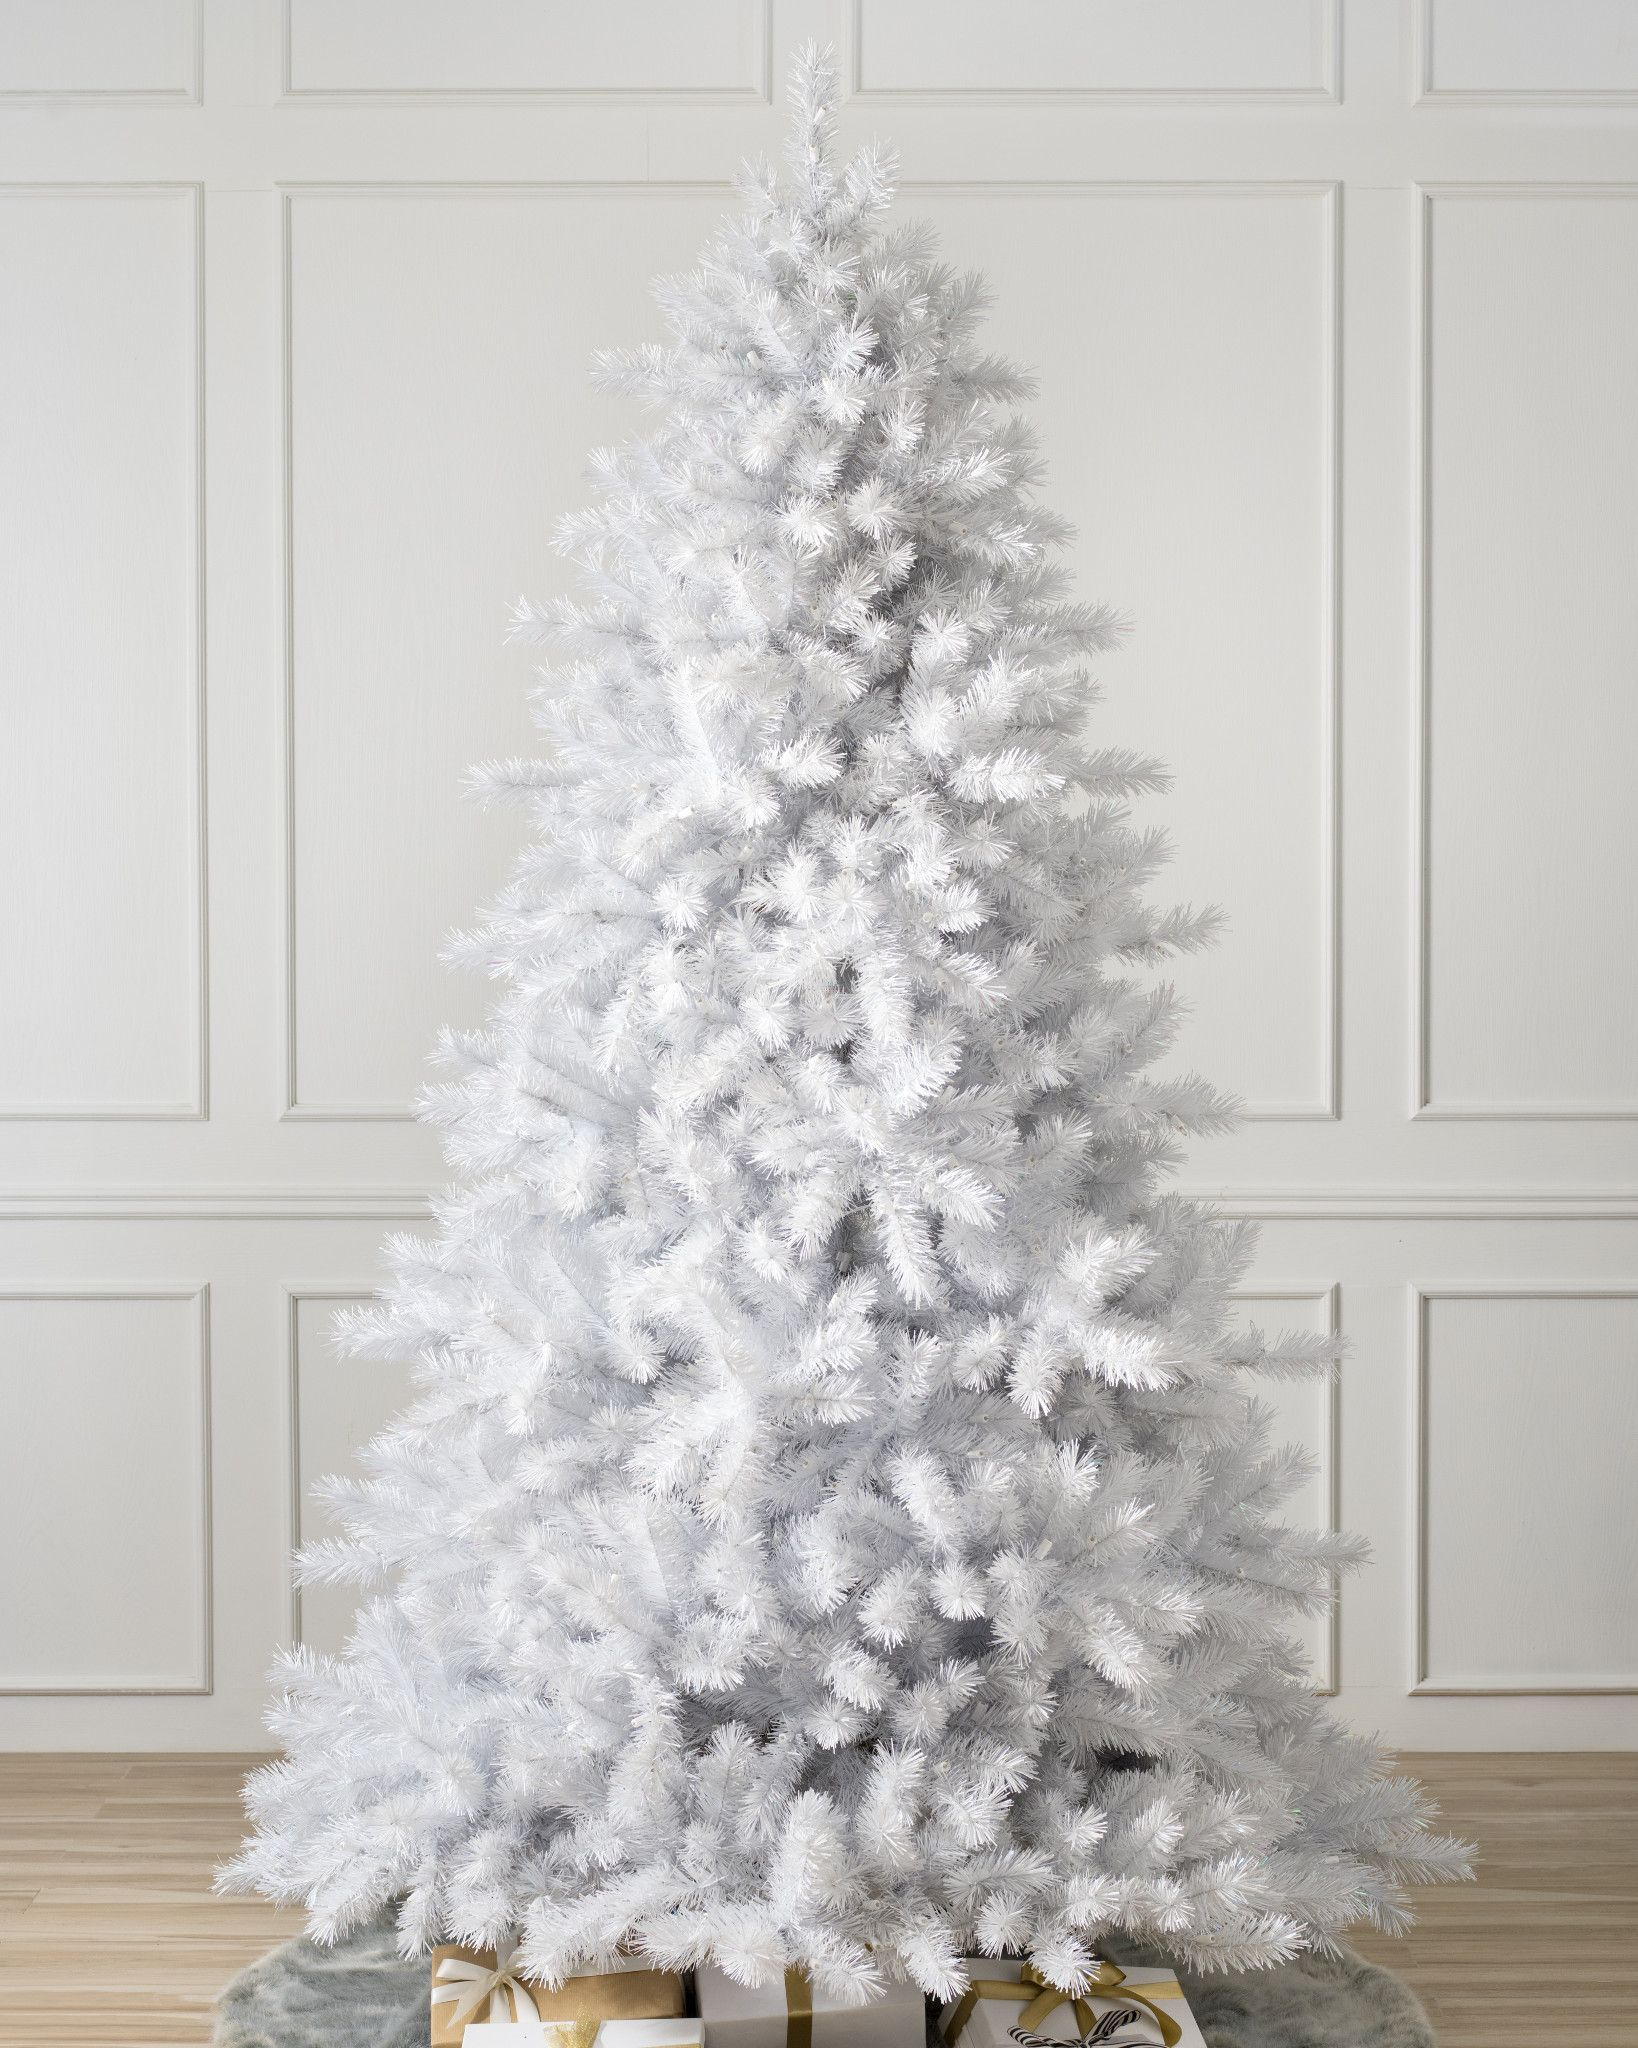 Classic White Christmas Tree Main Image Artificial | Balsam Hill